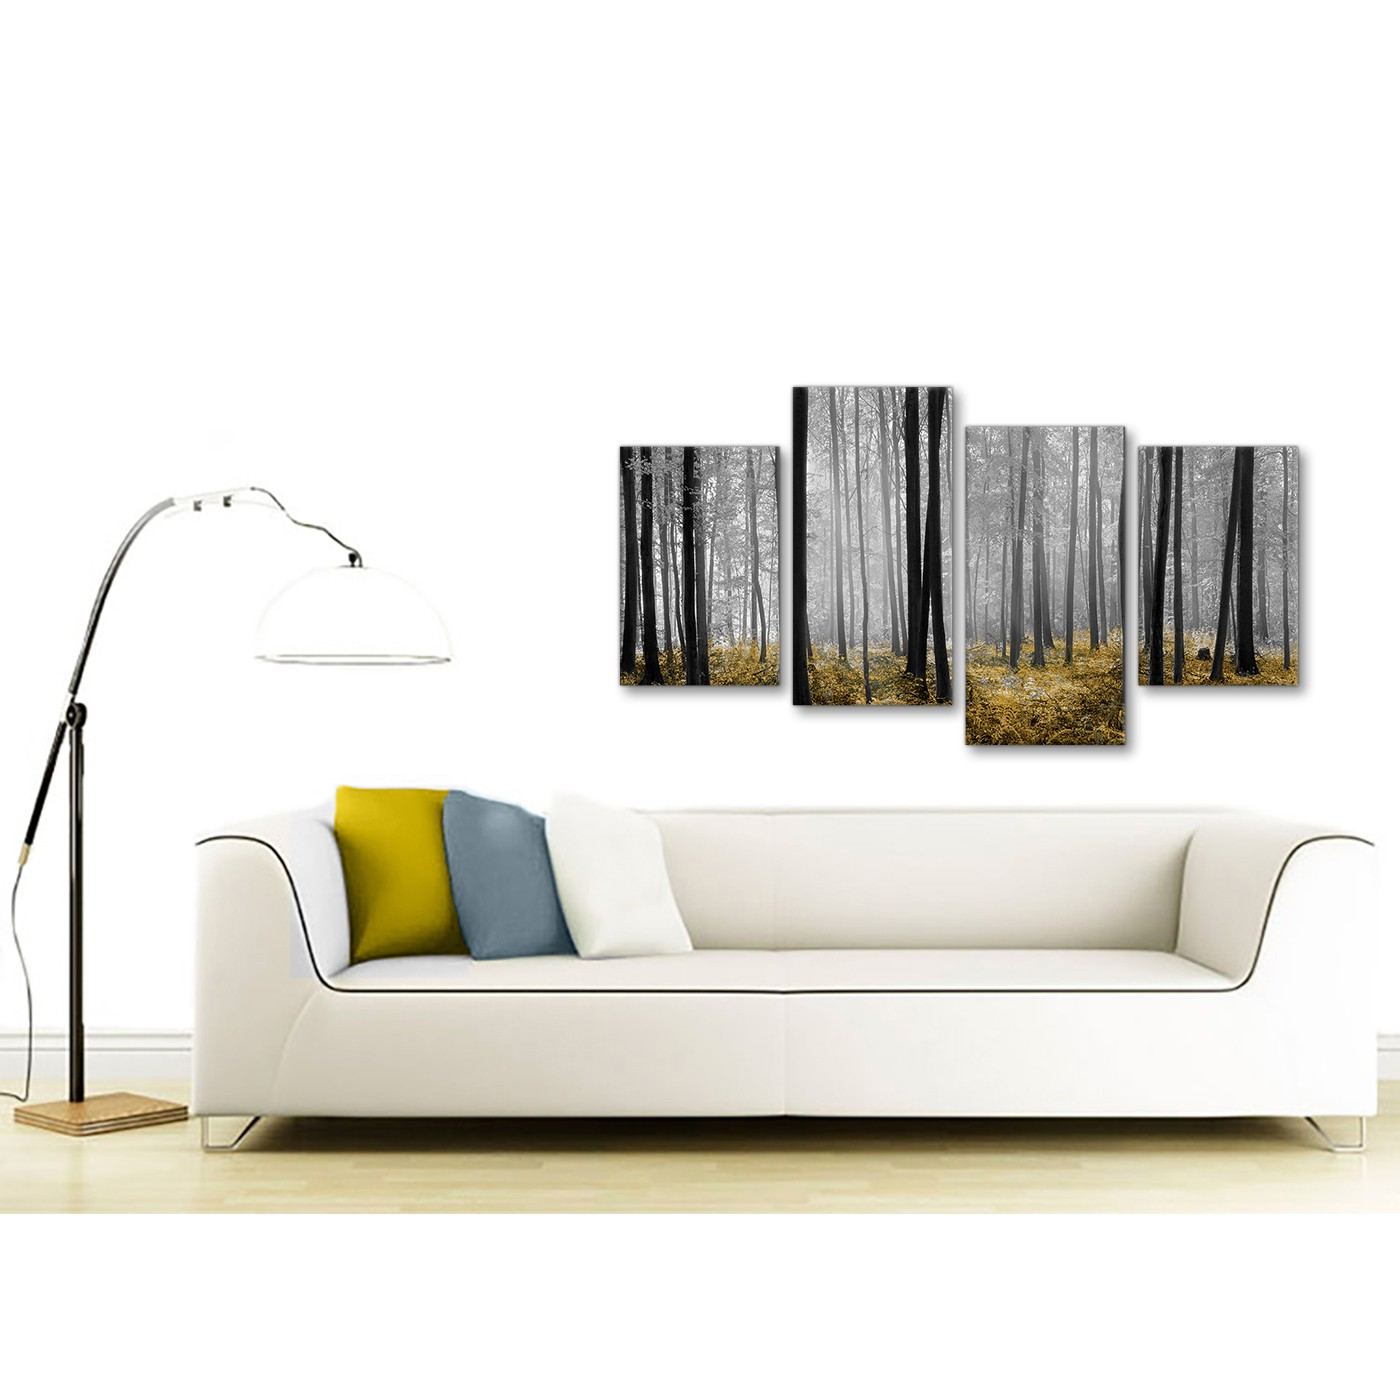 Foresthills Bedroom Large2: Large Yellow And Grey Forest Woodland Trees Bedroom Canvas